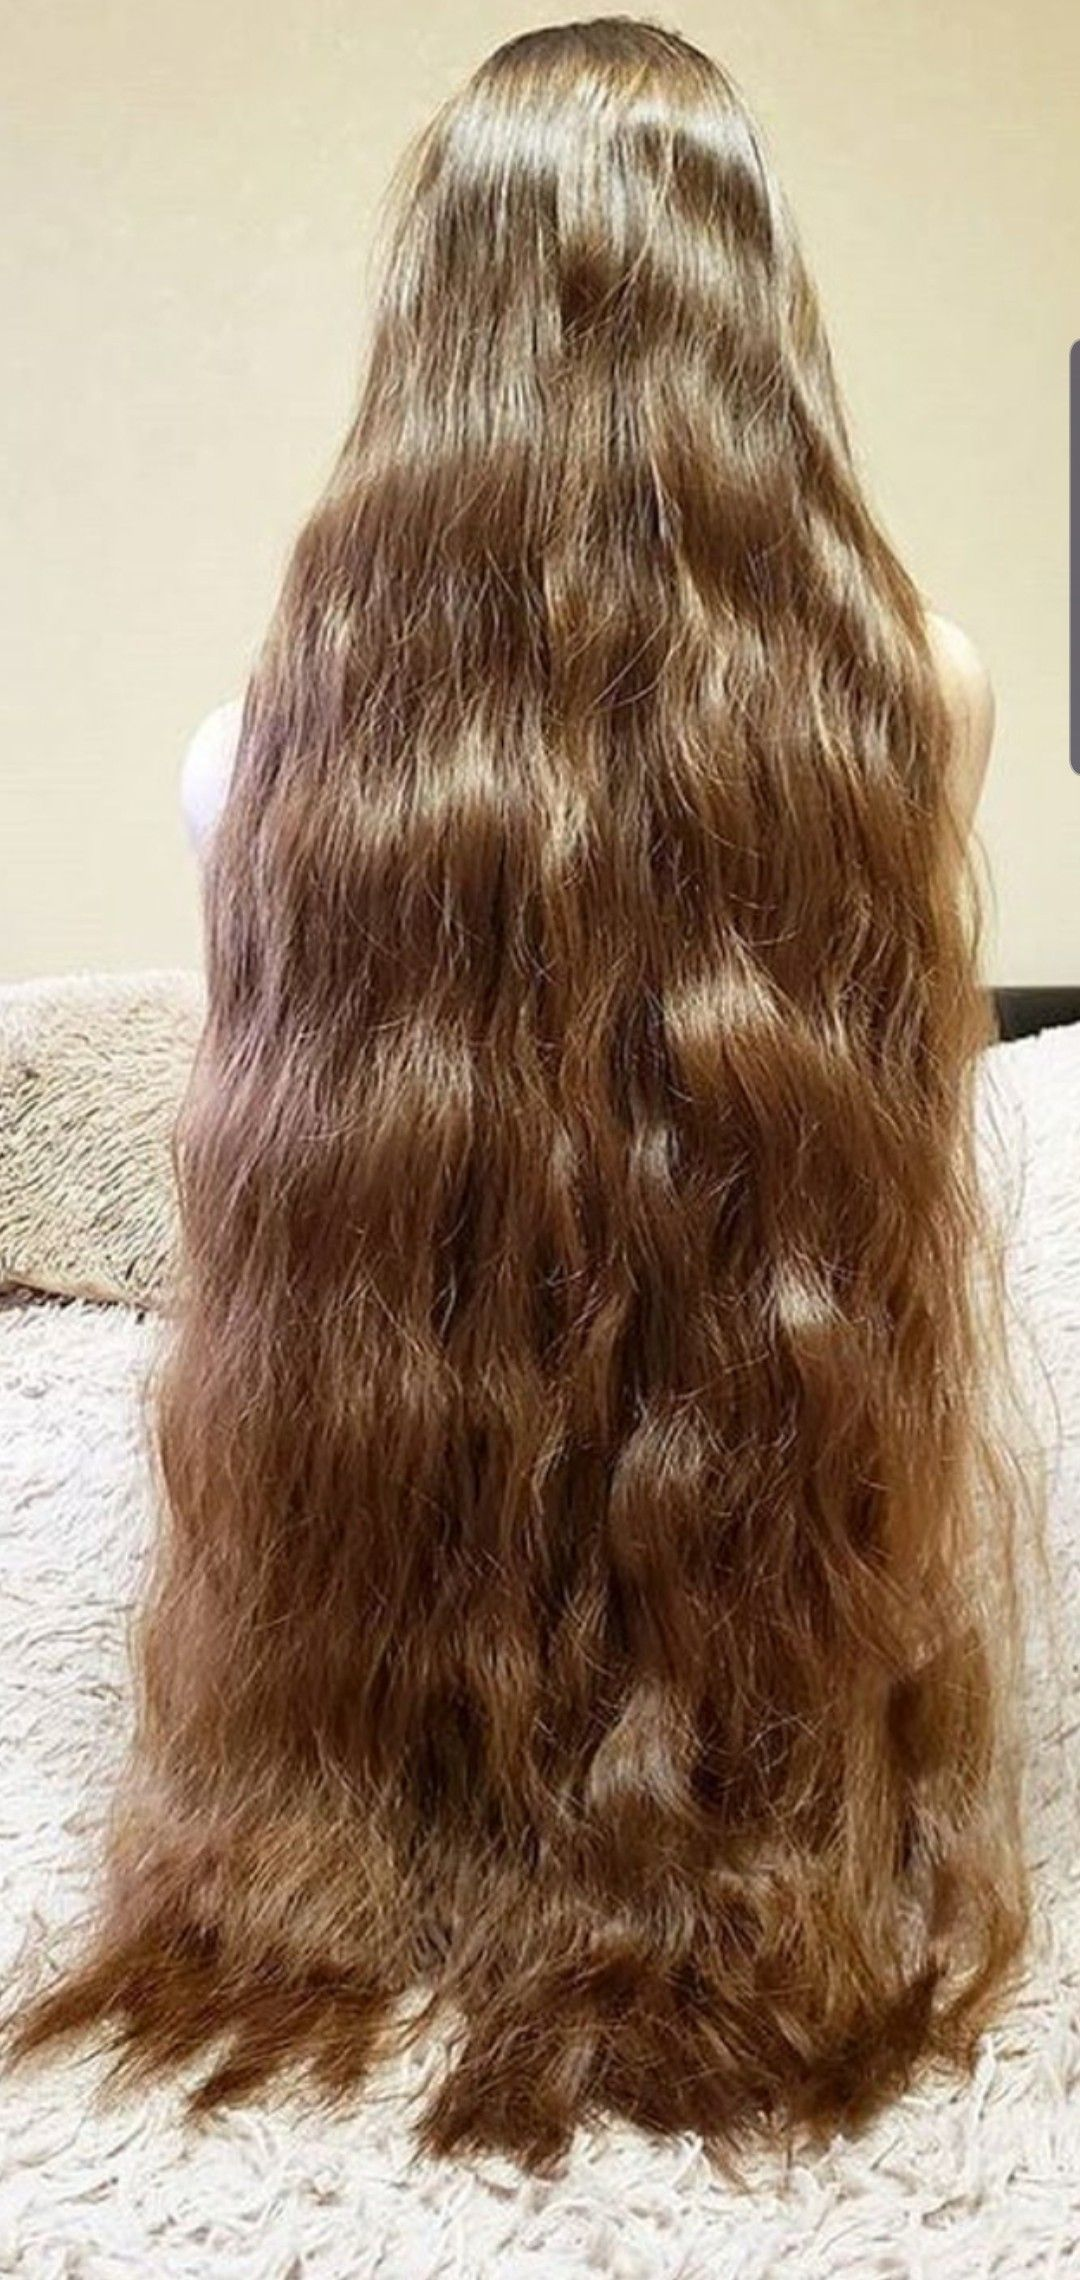 39++ Longest curly hair in the world trends